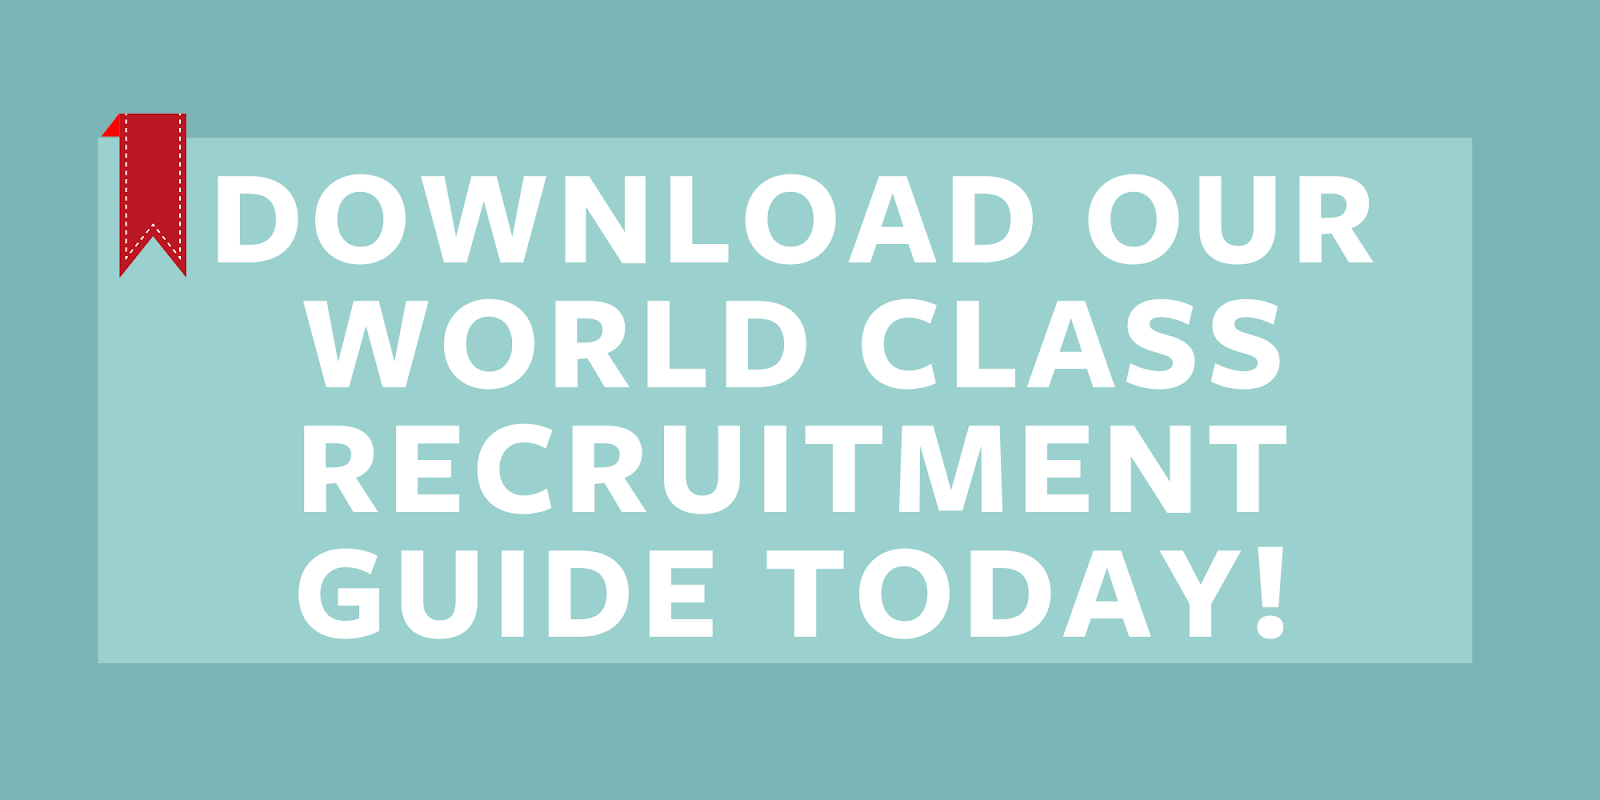 download-our-ebook-today